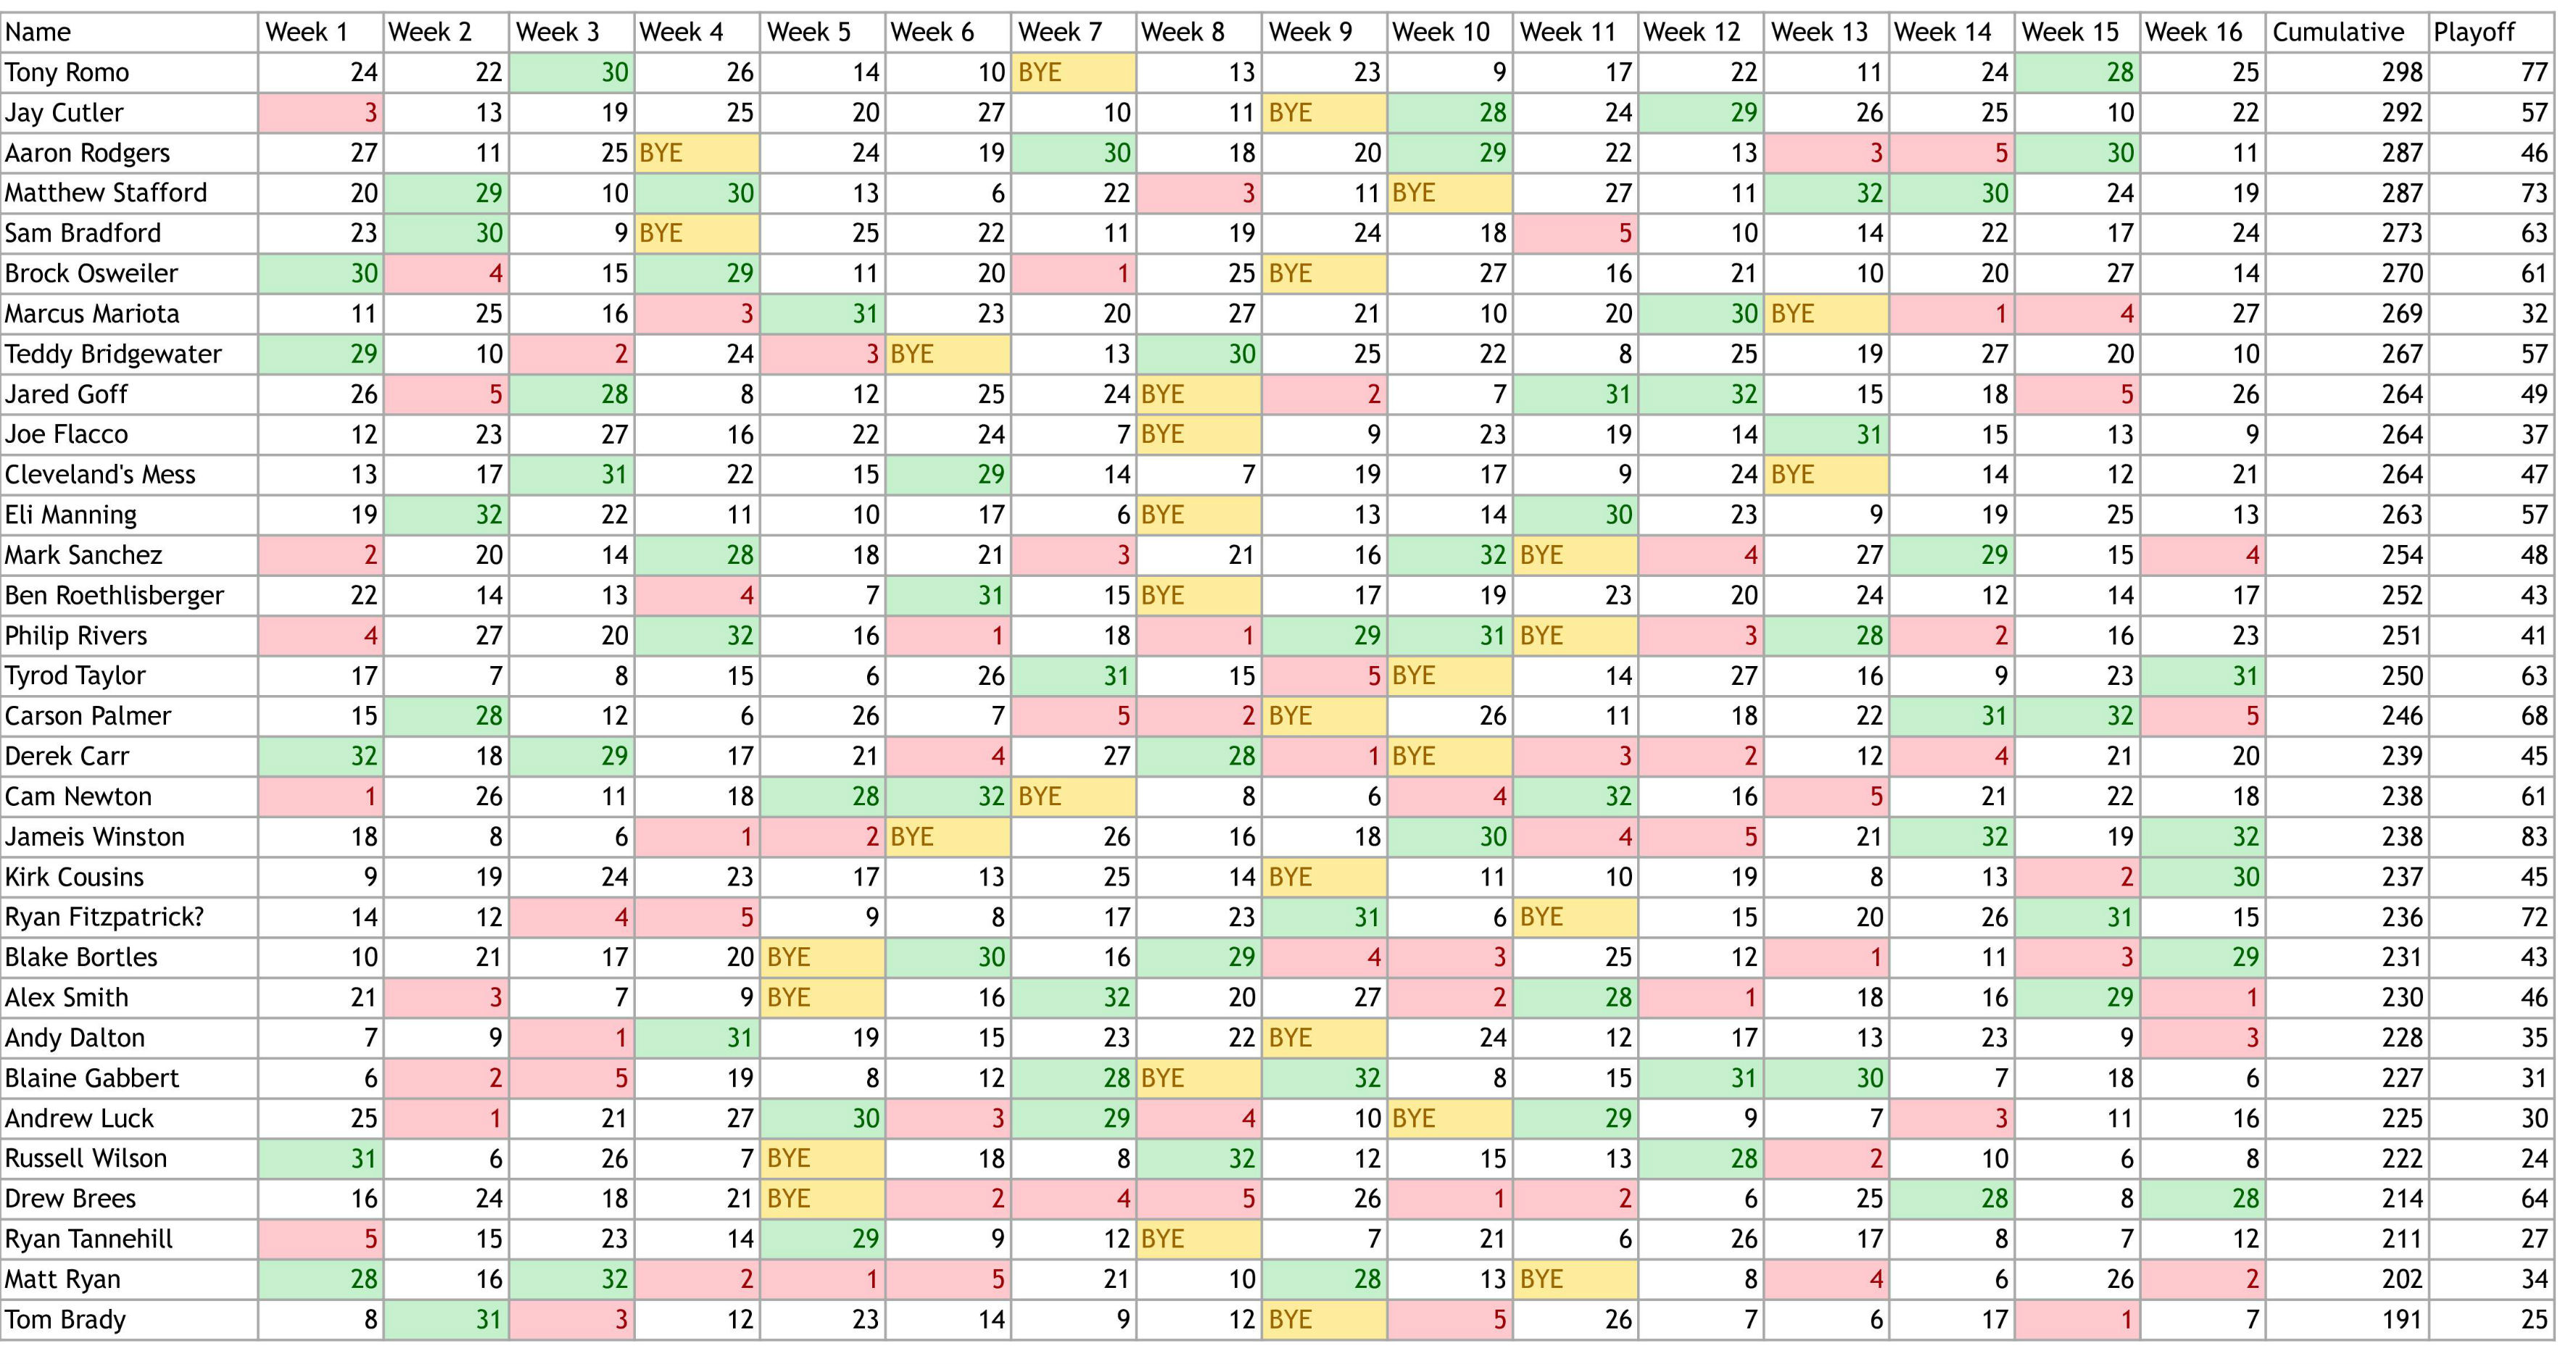 Quarterback Strength of Schedule